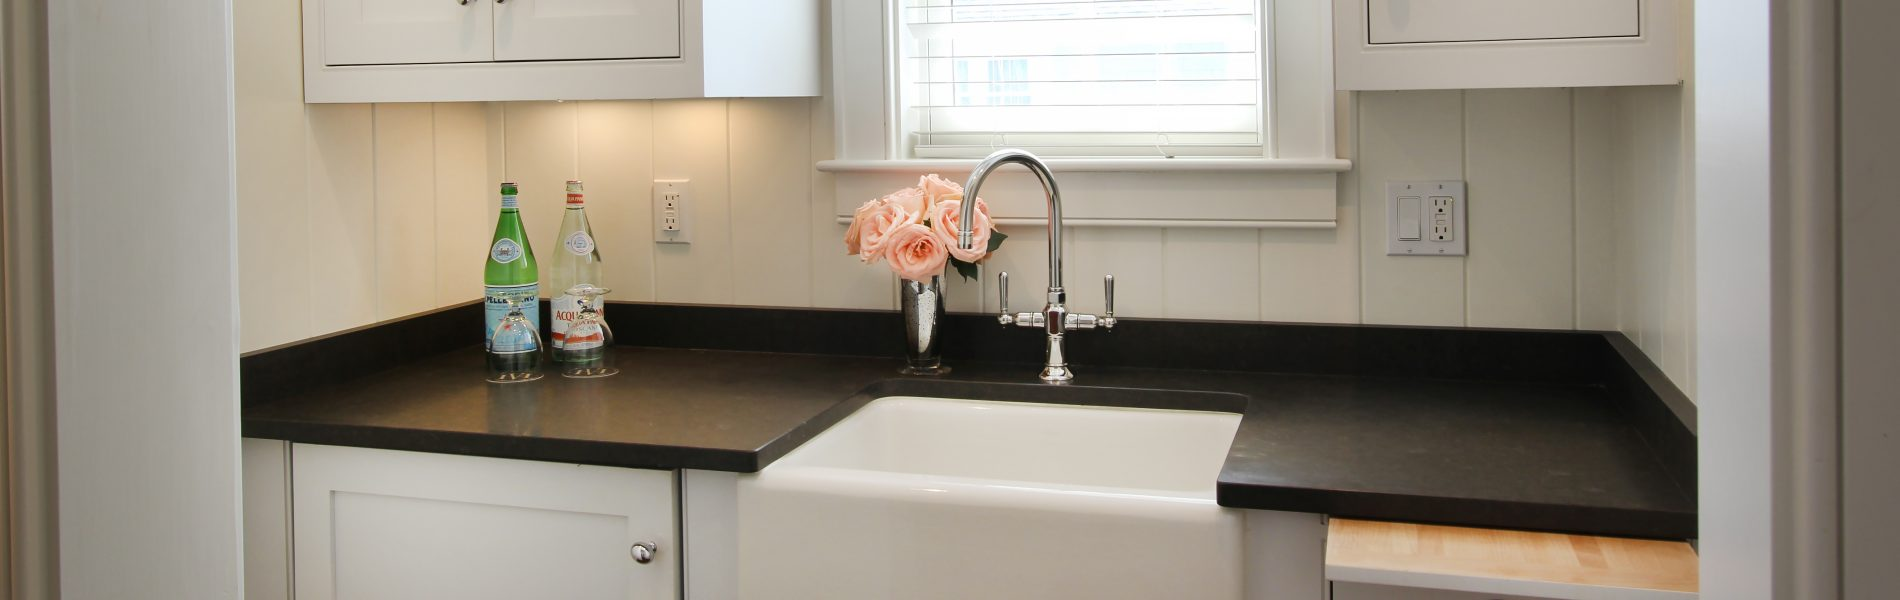 Martha's Vineyard Real Estate - Captain Cottages at Harbor View Hotel - Kitchen Sink